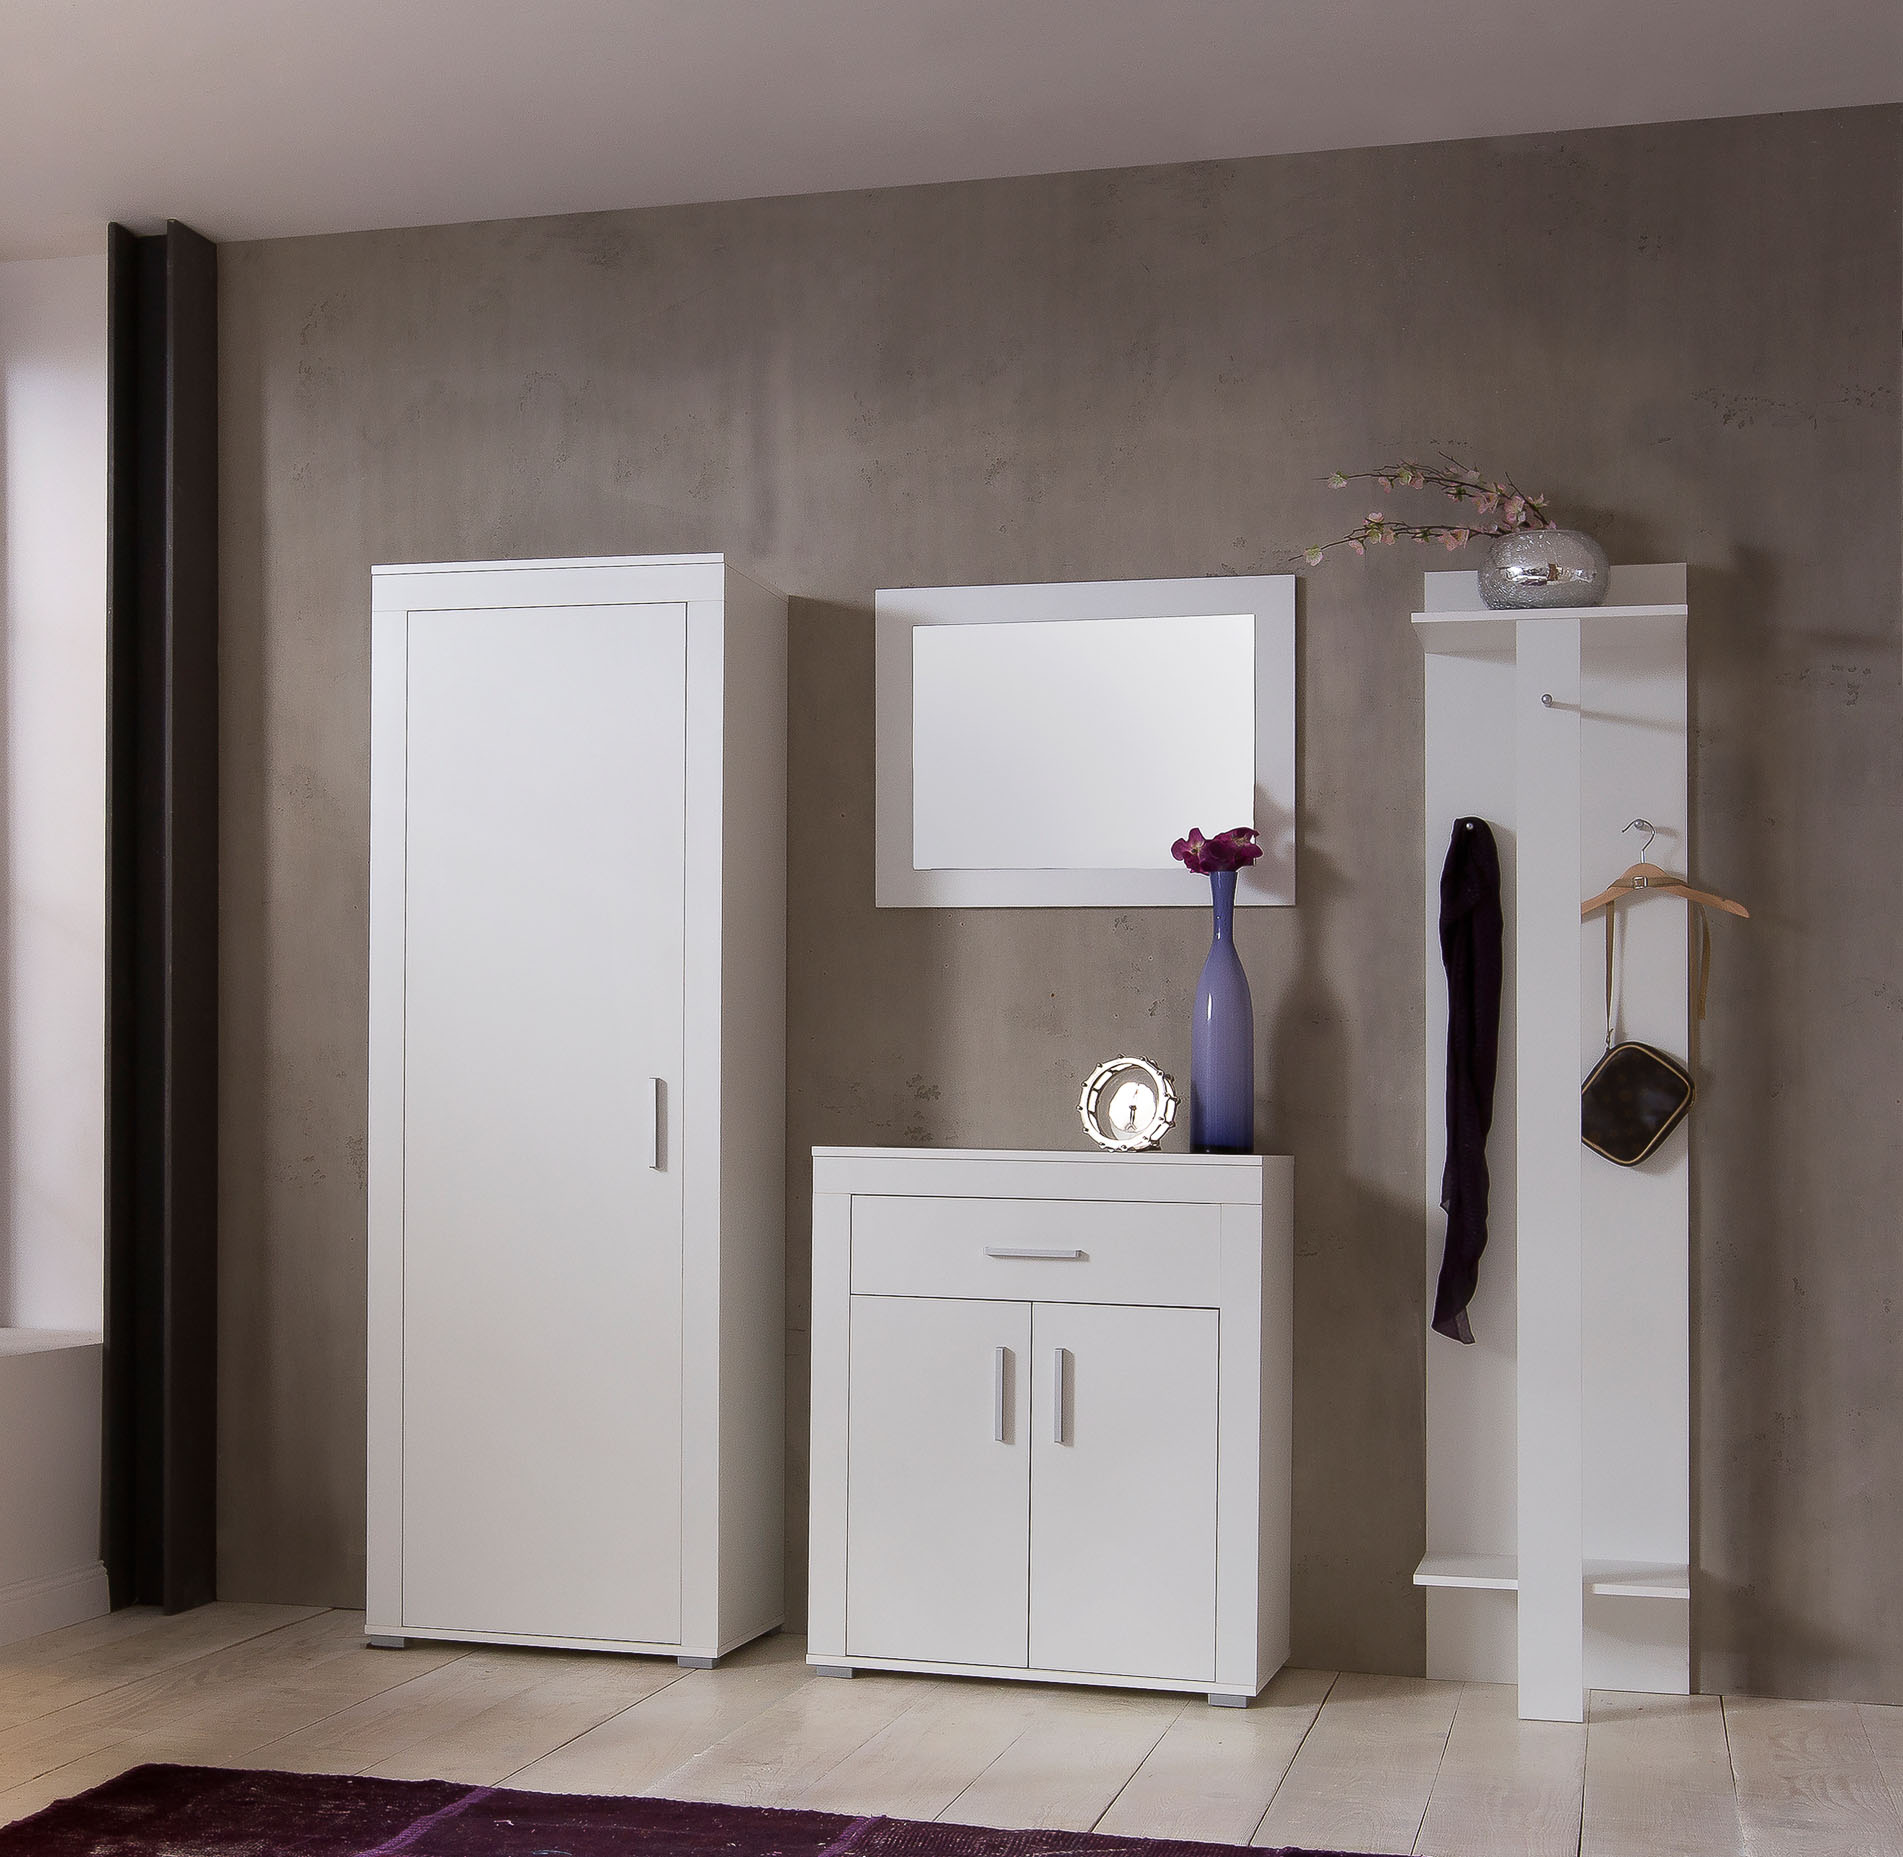 4tlg flurset garderobenset schuhschrank garderobenschrank. Black Bedroom Furniture Sets. Home Design Ideas